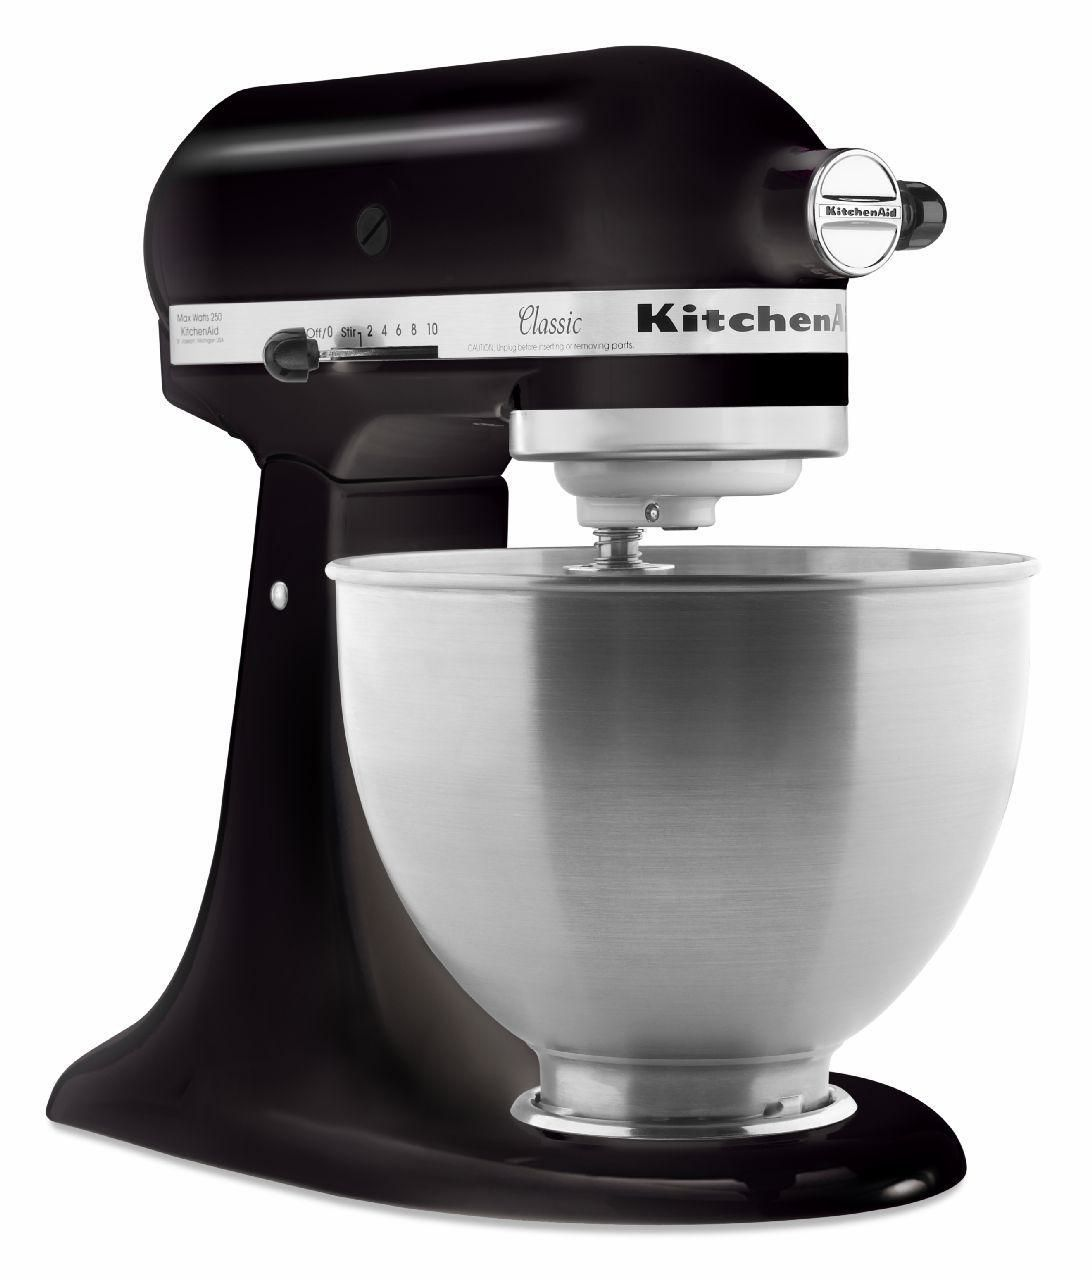 Amazing KitchenAid® Classic Series 4.5 Quart Tilt Head Stand Mixer | Walmart Canada Awesome Ideas